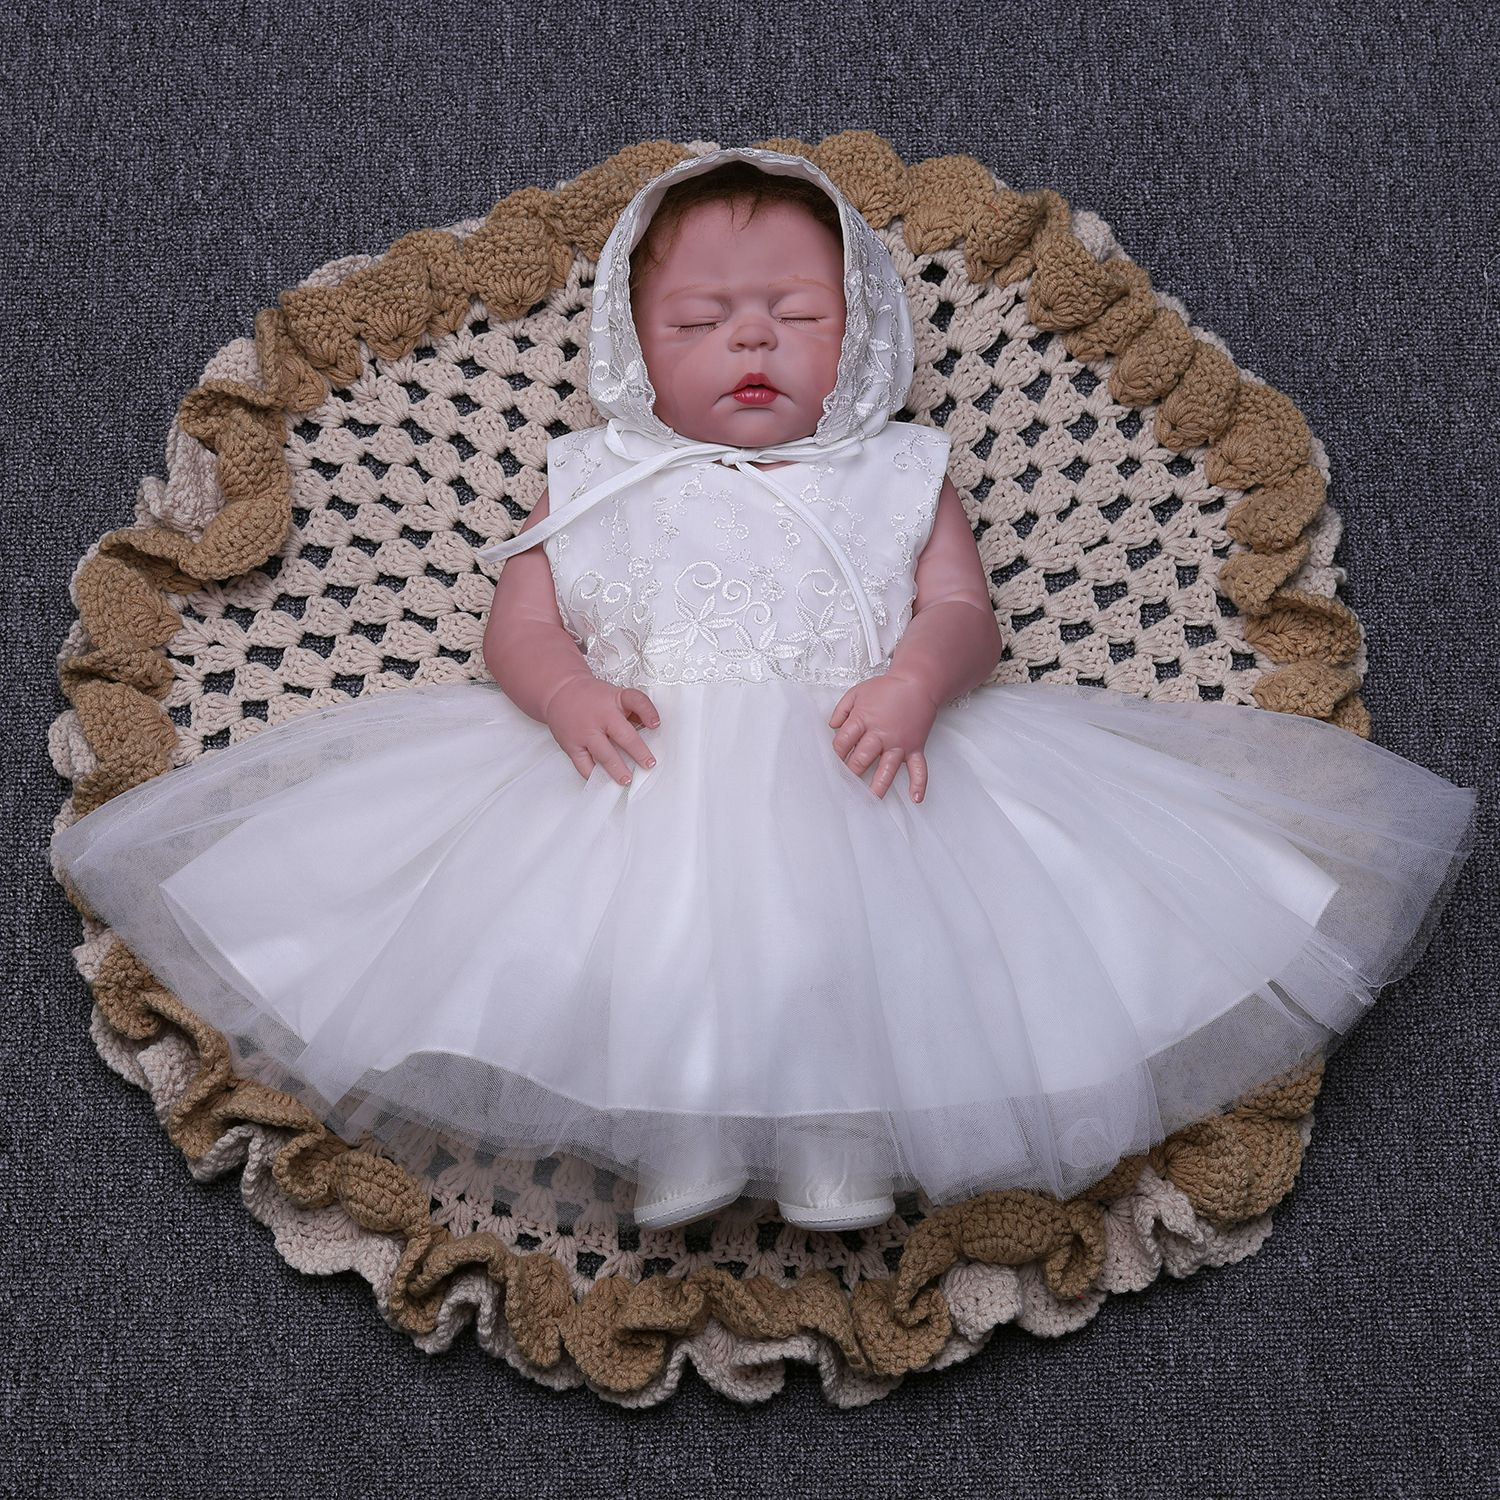 Hot New Kids Clothes Princess Designs Summer White Baby Girls Wedding Party Dresses With Hat